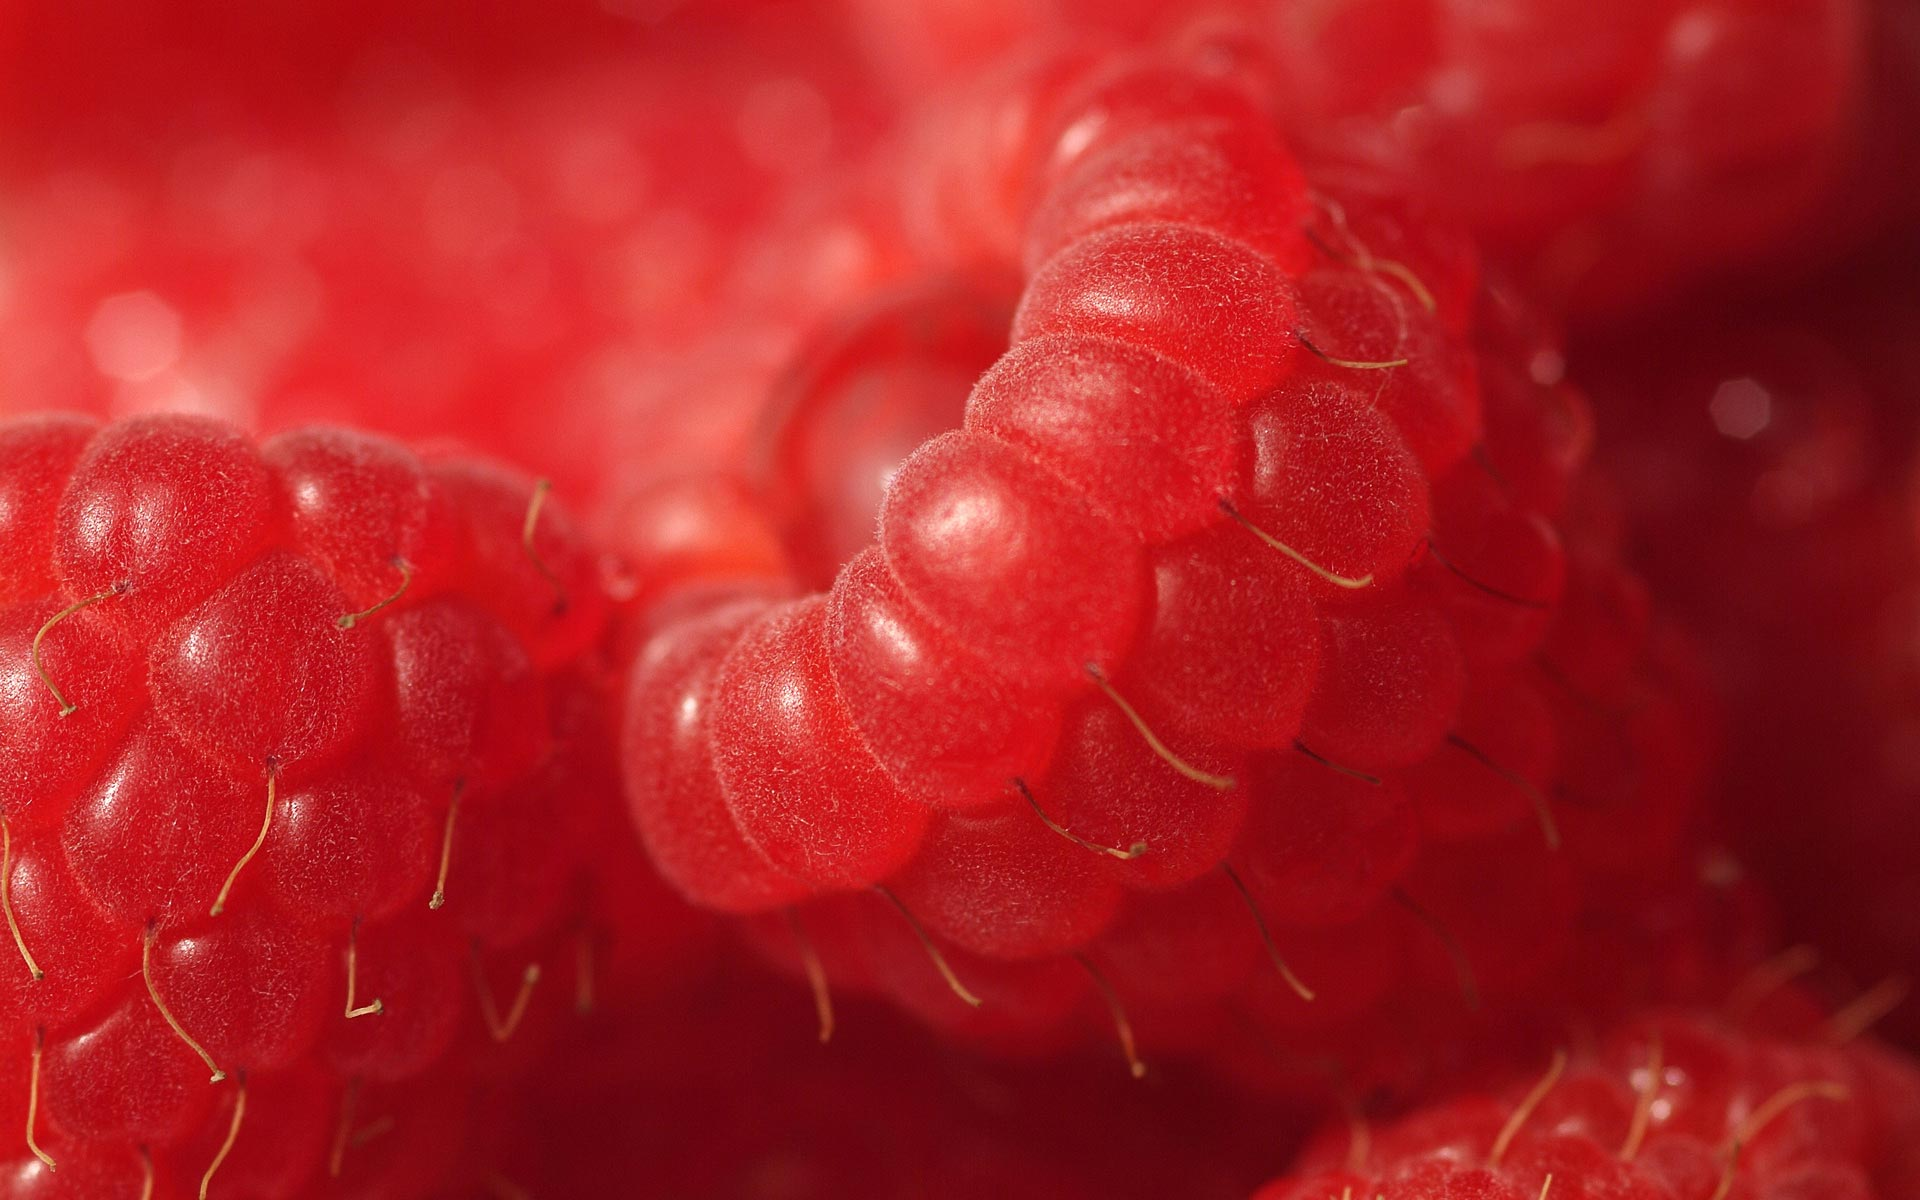 Raspberries - Live HD Raspberries Wallpapers, Photos